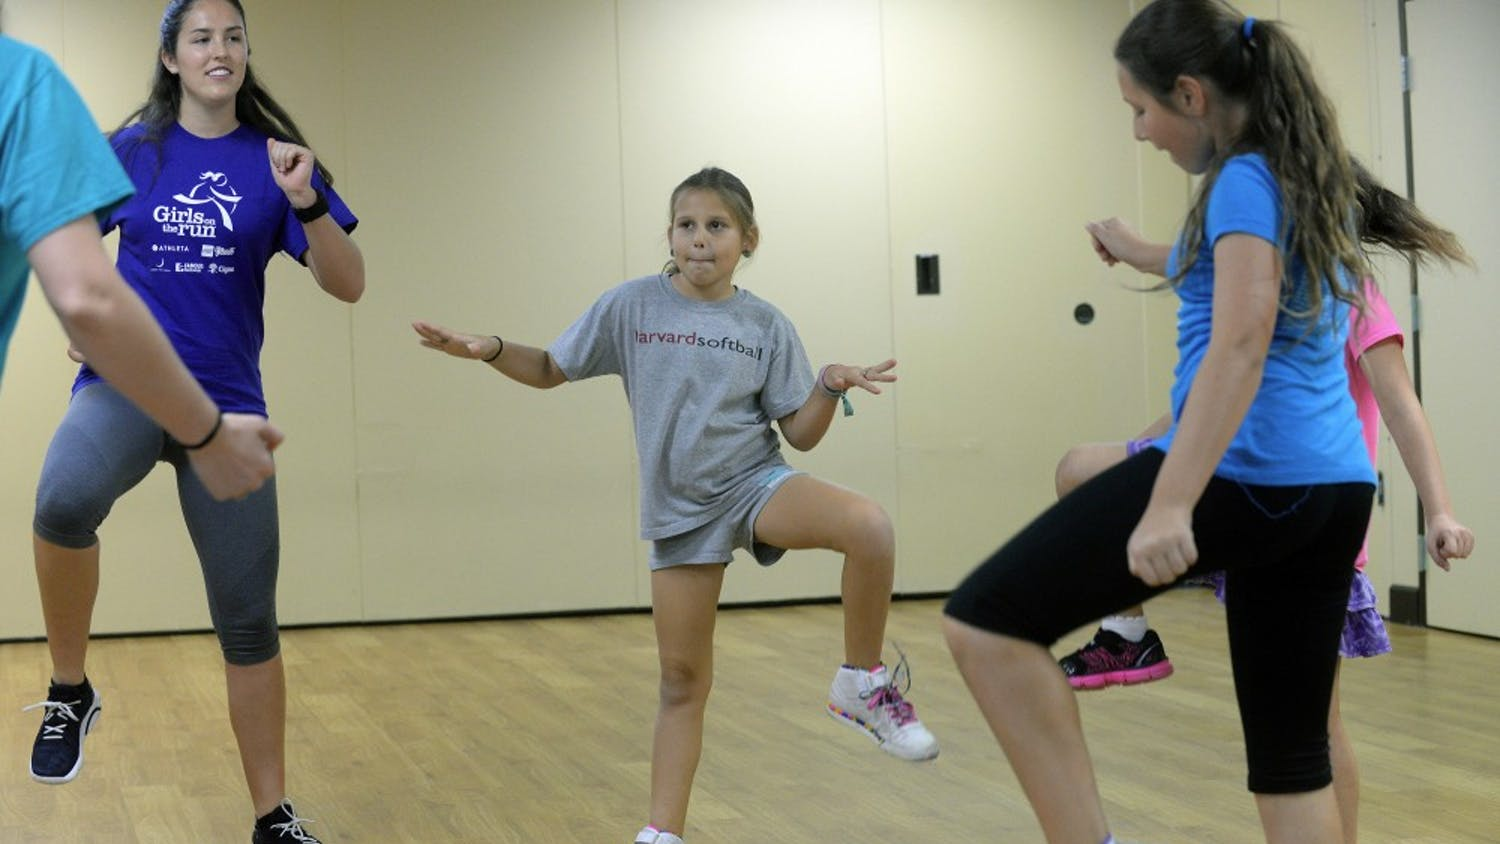 Nine-year-old Shoshanna Faerman, center, gets in her calisthenics workout on Sunday, Feb. 22, 2015. To fight obesity and improve girls' self-confidence, Girls on the Run meets every Sunday at B'nai Torah Congregation in Boca Raton, Fla. It's part of a national organization that encourages teamwork, physical fitness and positive attitudes for girls from eight to 13. (Scott Fisher/Sun Sentinel/TNS)